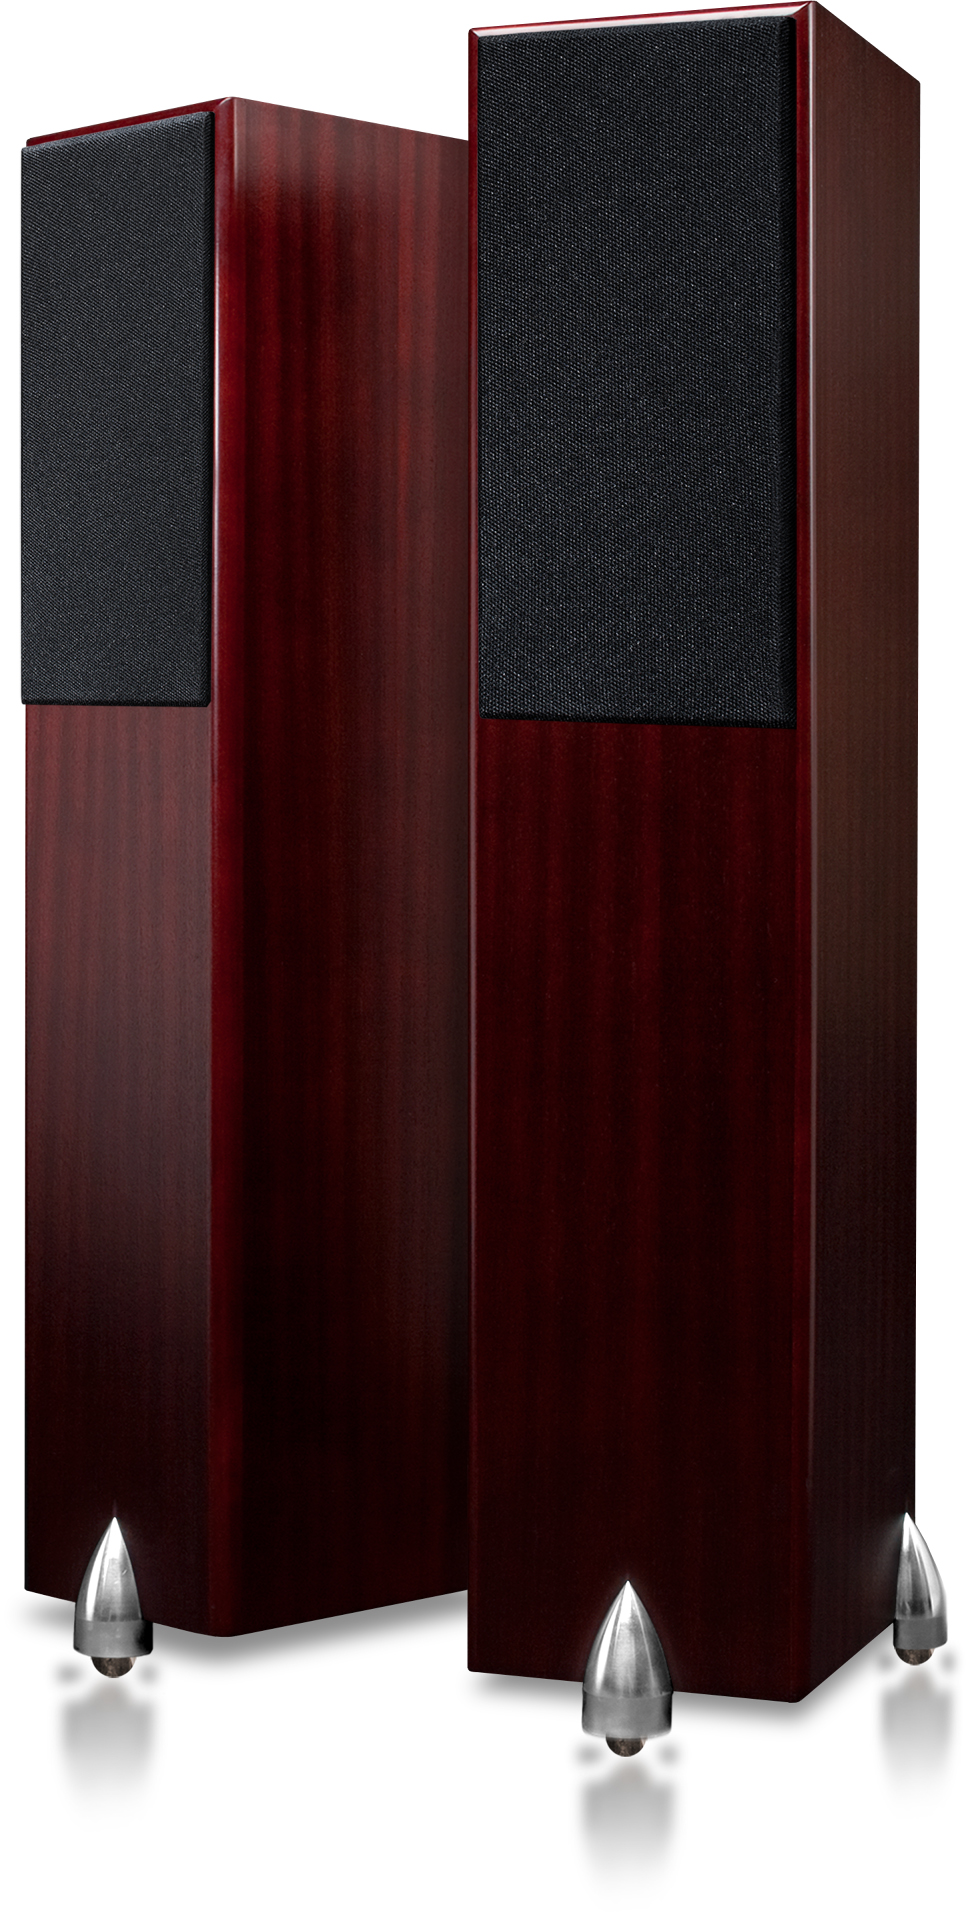 Totem Acoustic Forest mahogany